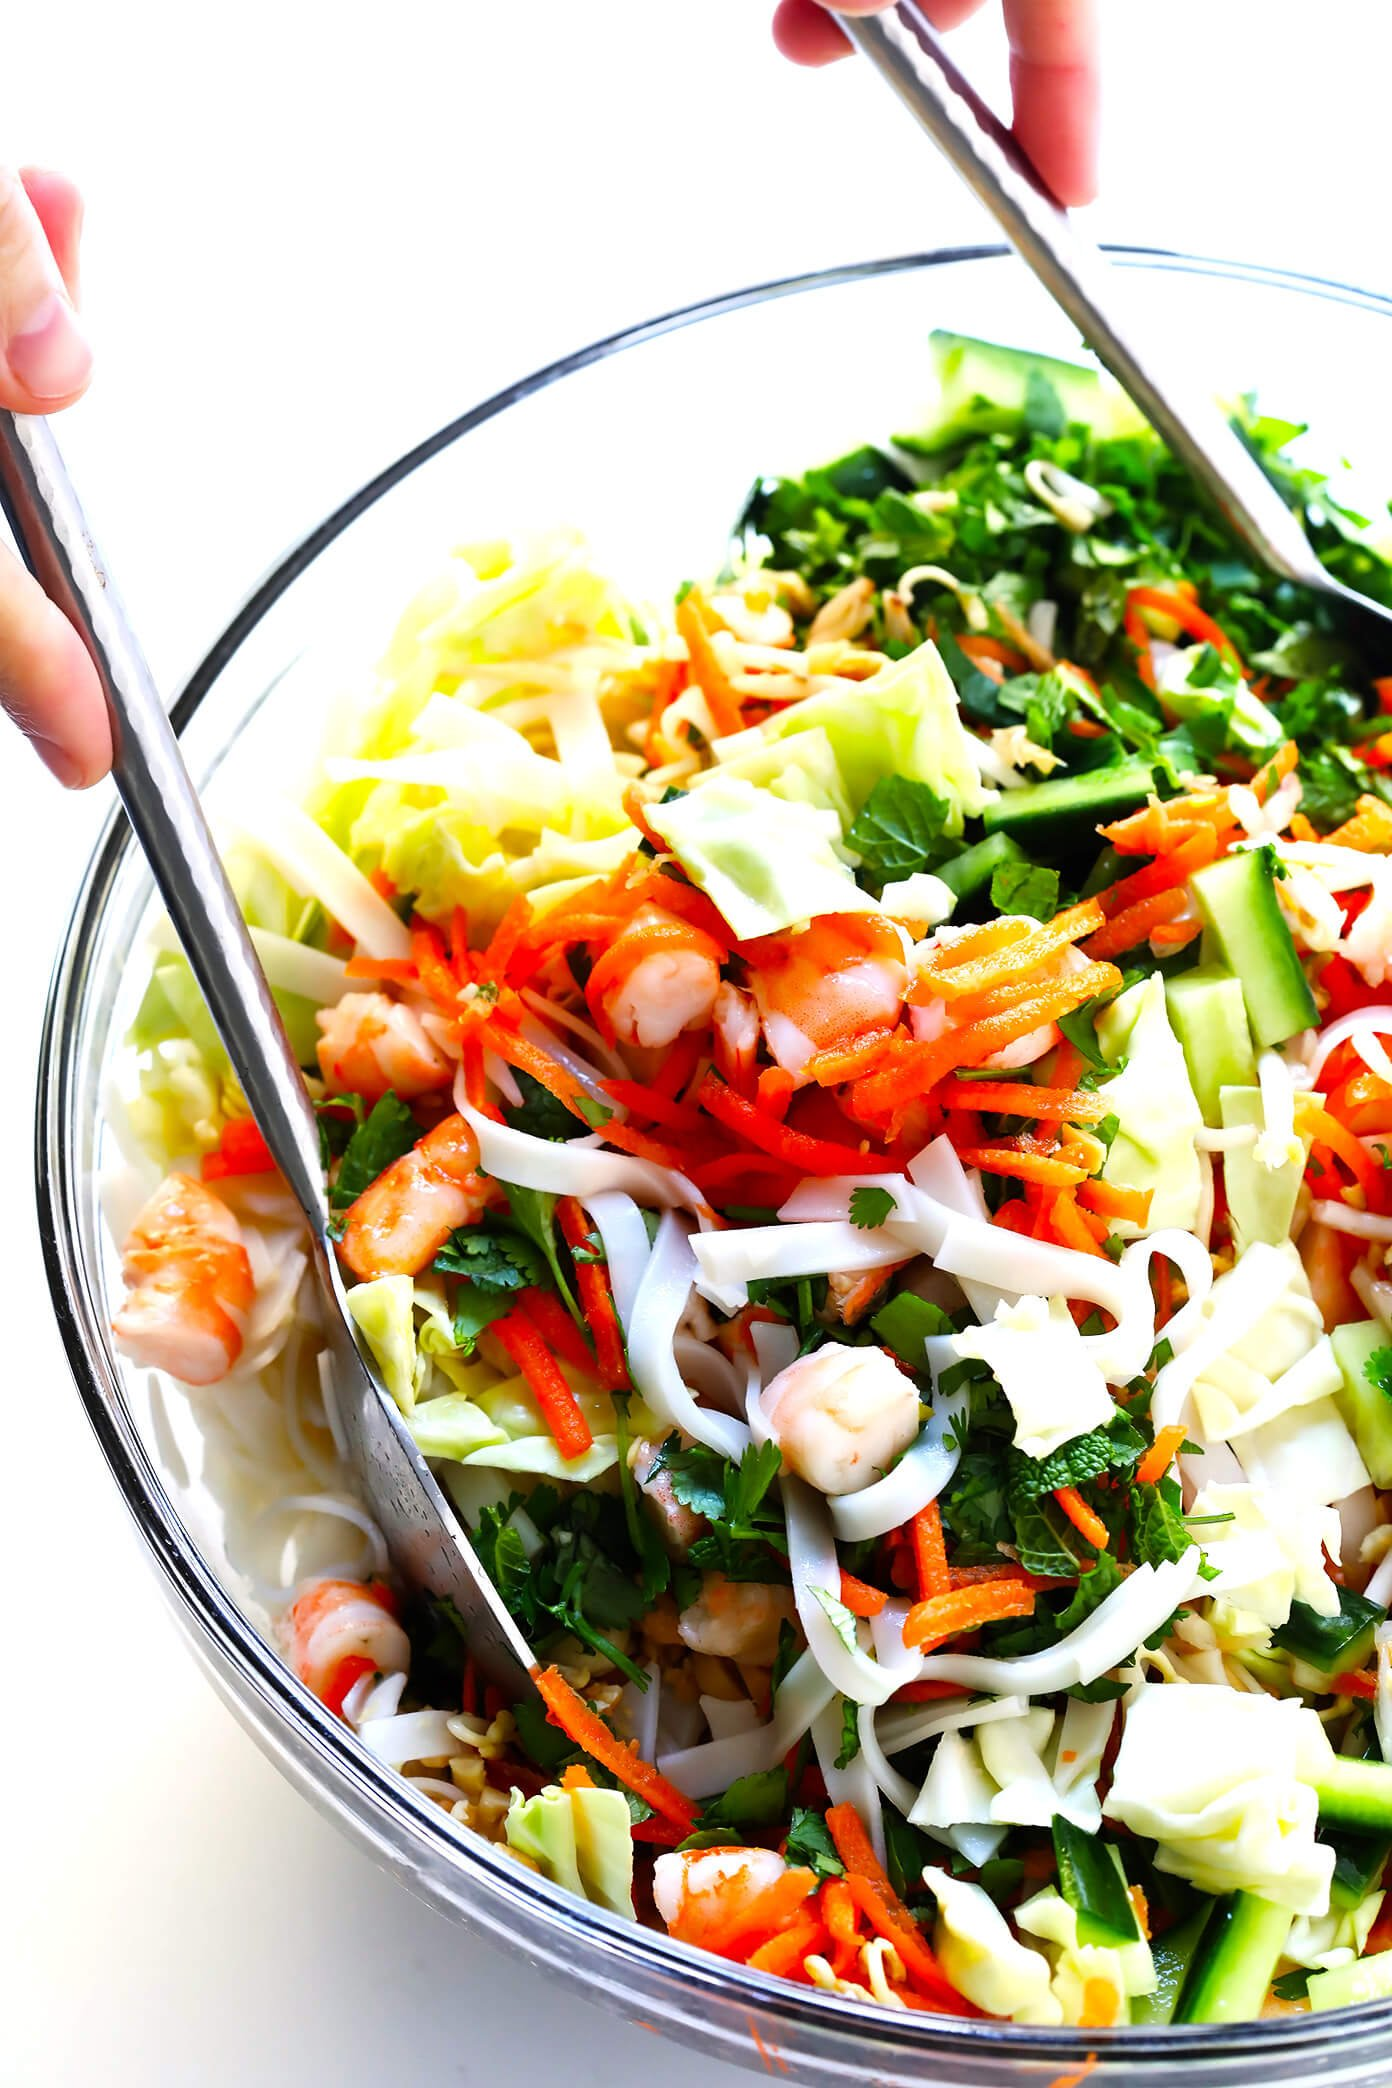 Tossing the Vietnamese Spring Roll Salad